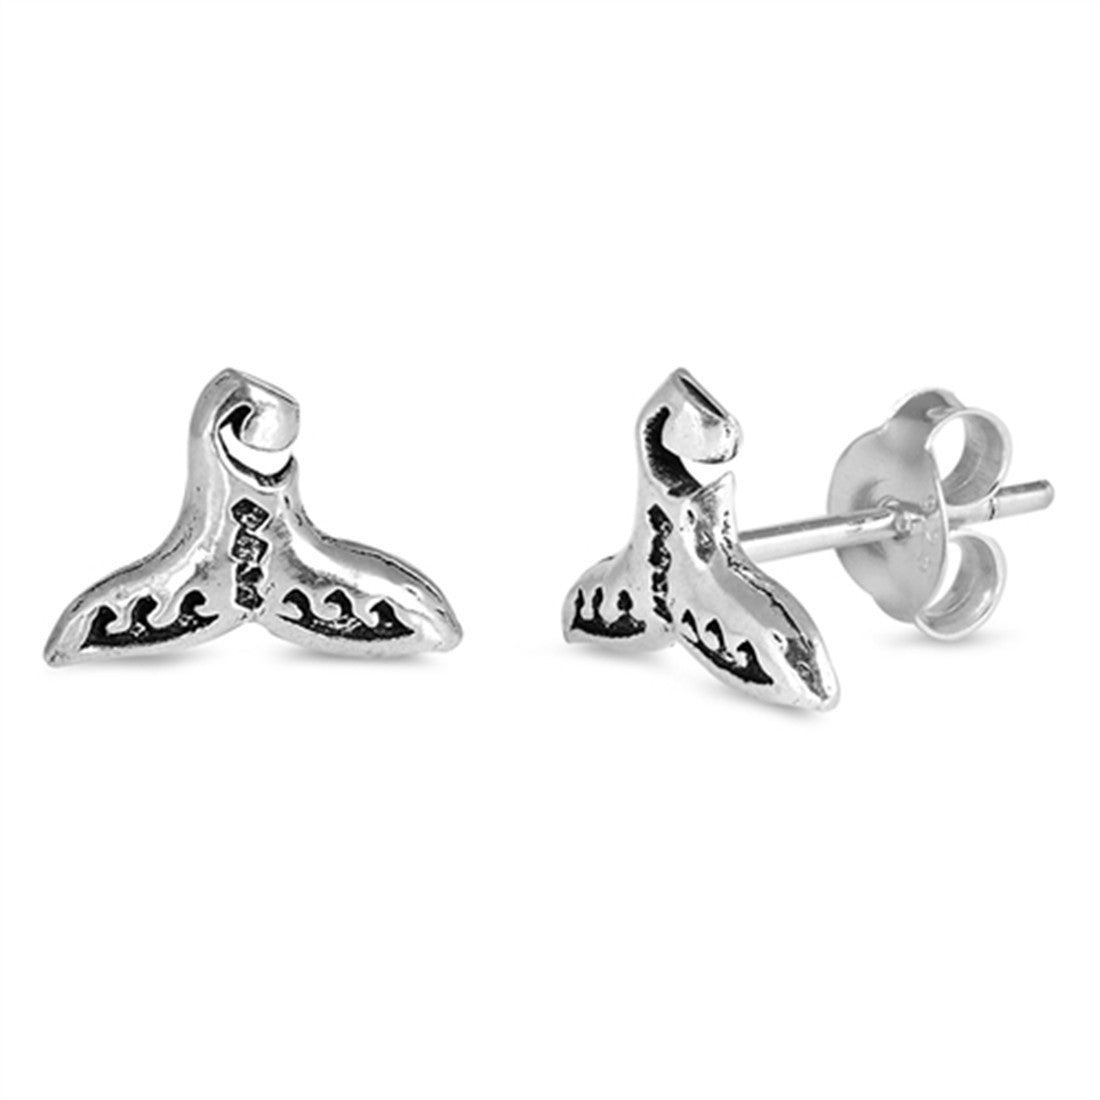 6c4b66ab0 7mm Tiny Whale Tail Stud Post Earrings 925 Sterling Silver Whale Tail Earring  Choose Color -